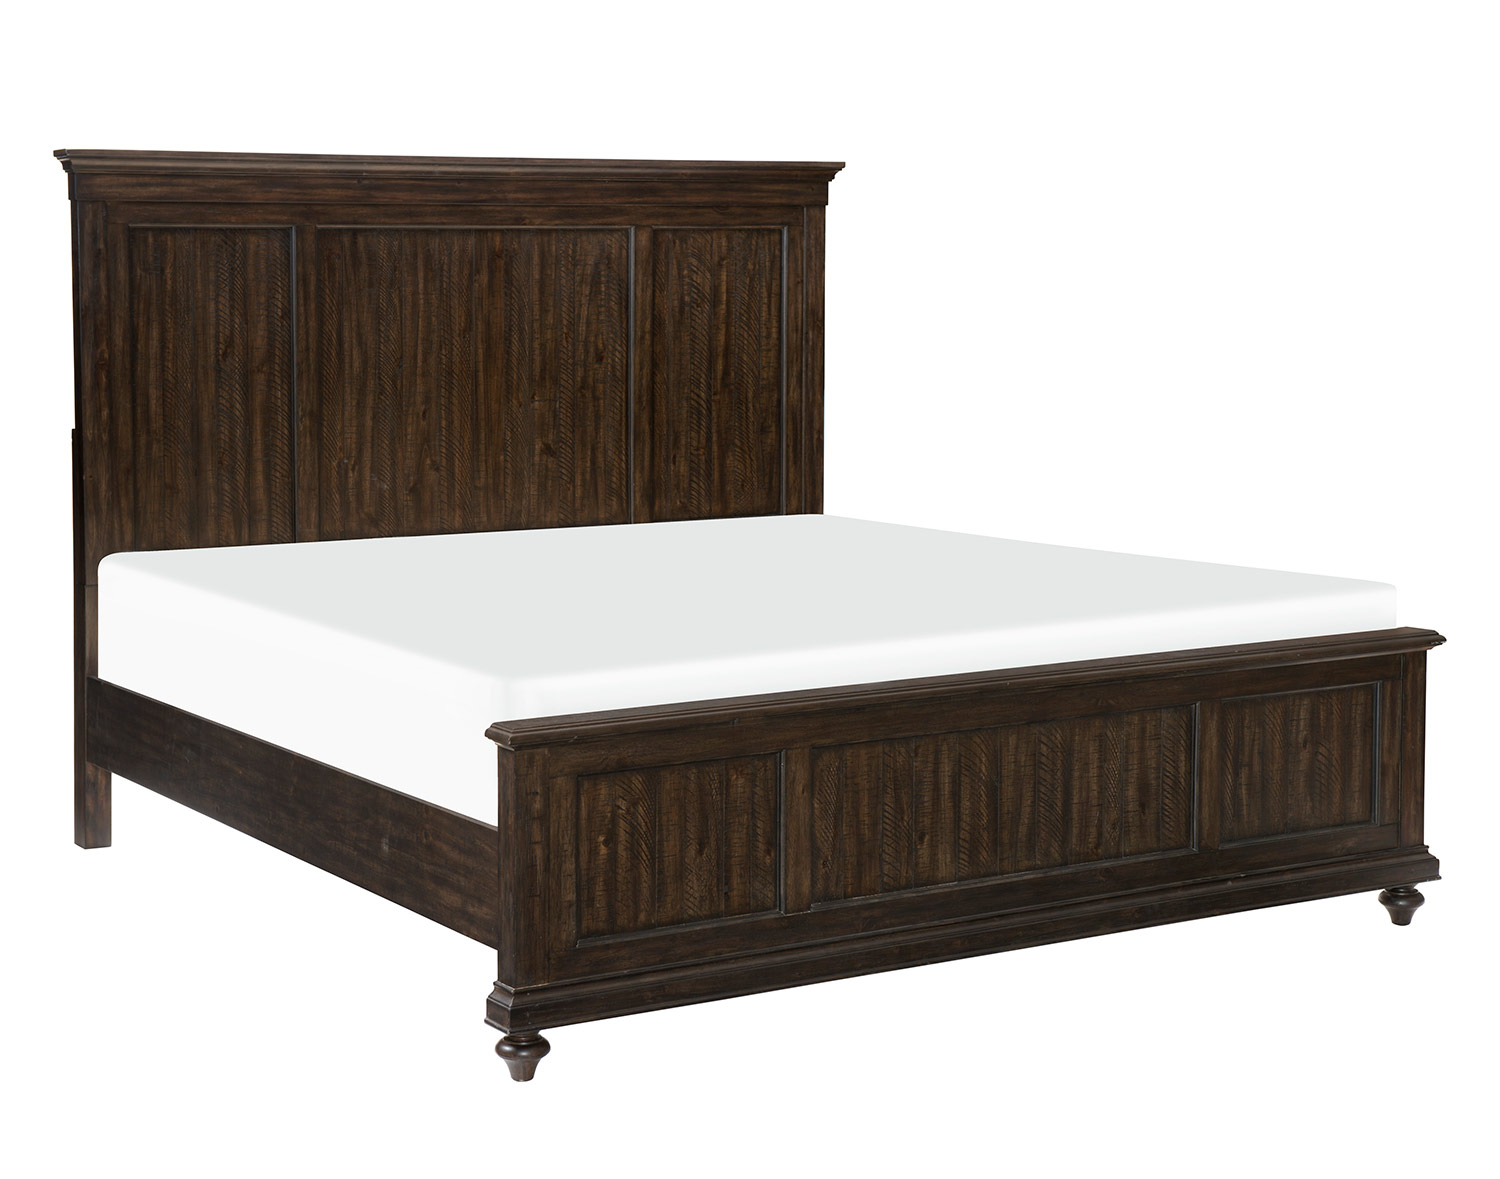 Homelegance Cardano Bed - Driftwood Charcoal over Acacia Solids and Veneers